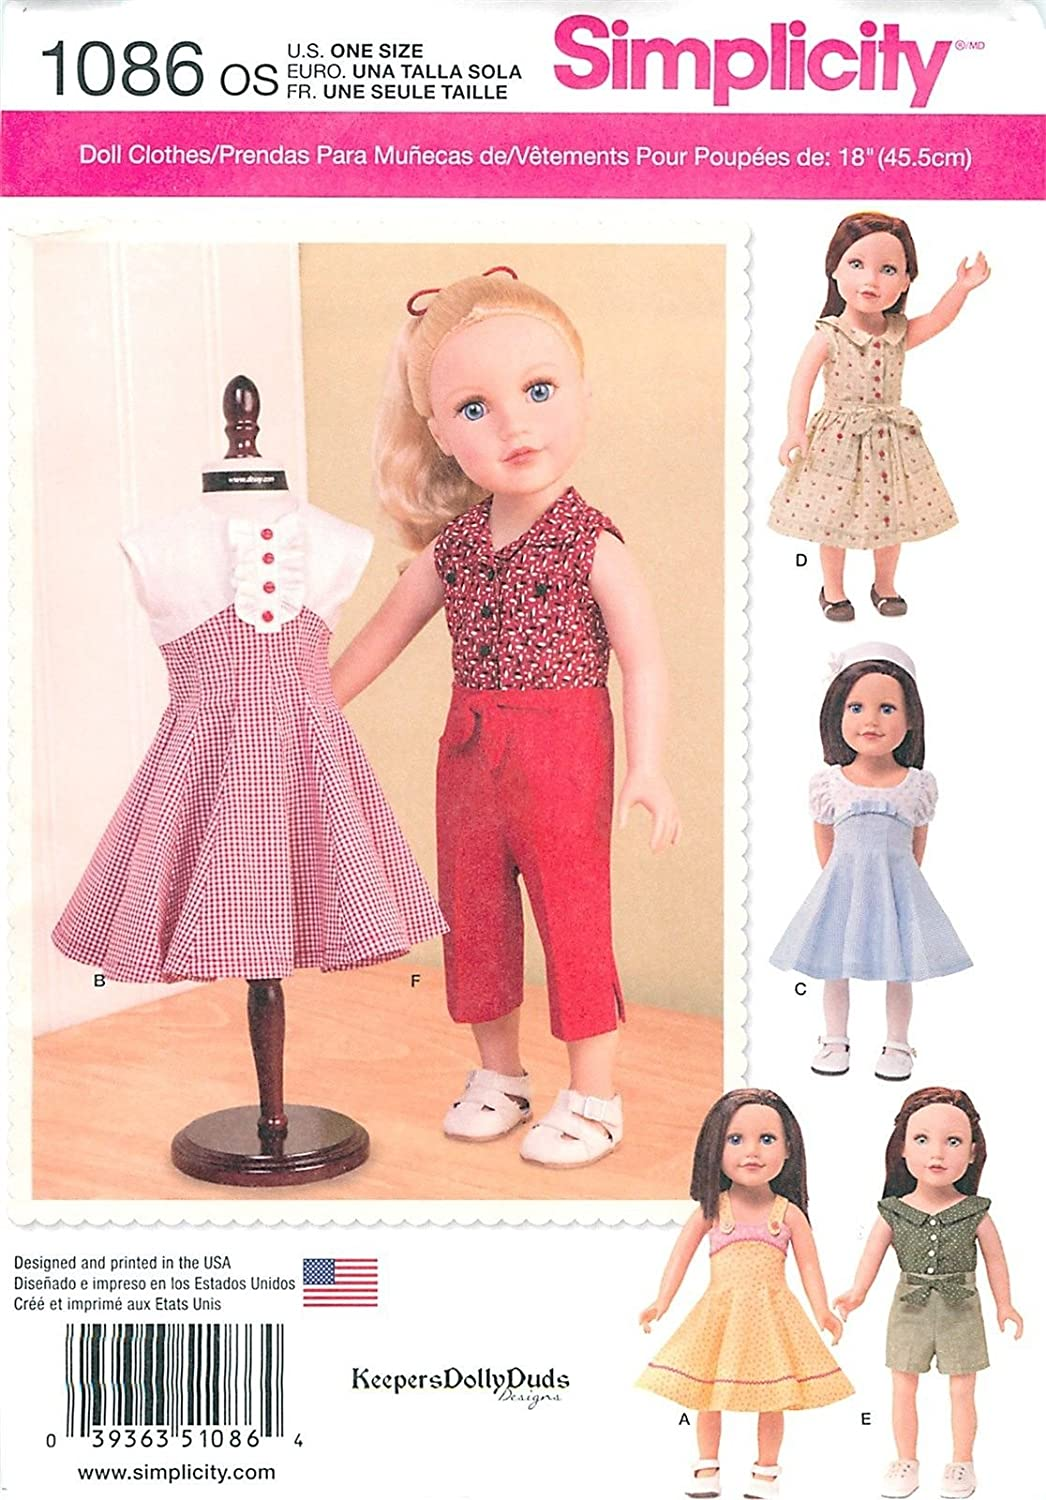 Simplicity 1086 18 inch 45.5cm Girl Doll Clothes Pattern American Seller supplier_paulastreasuredfinds